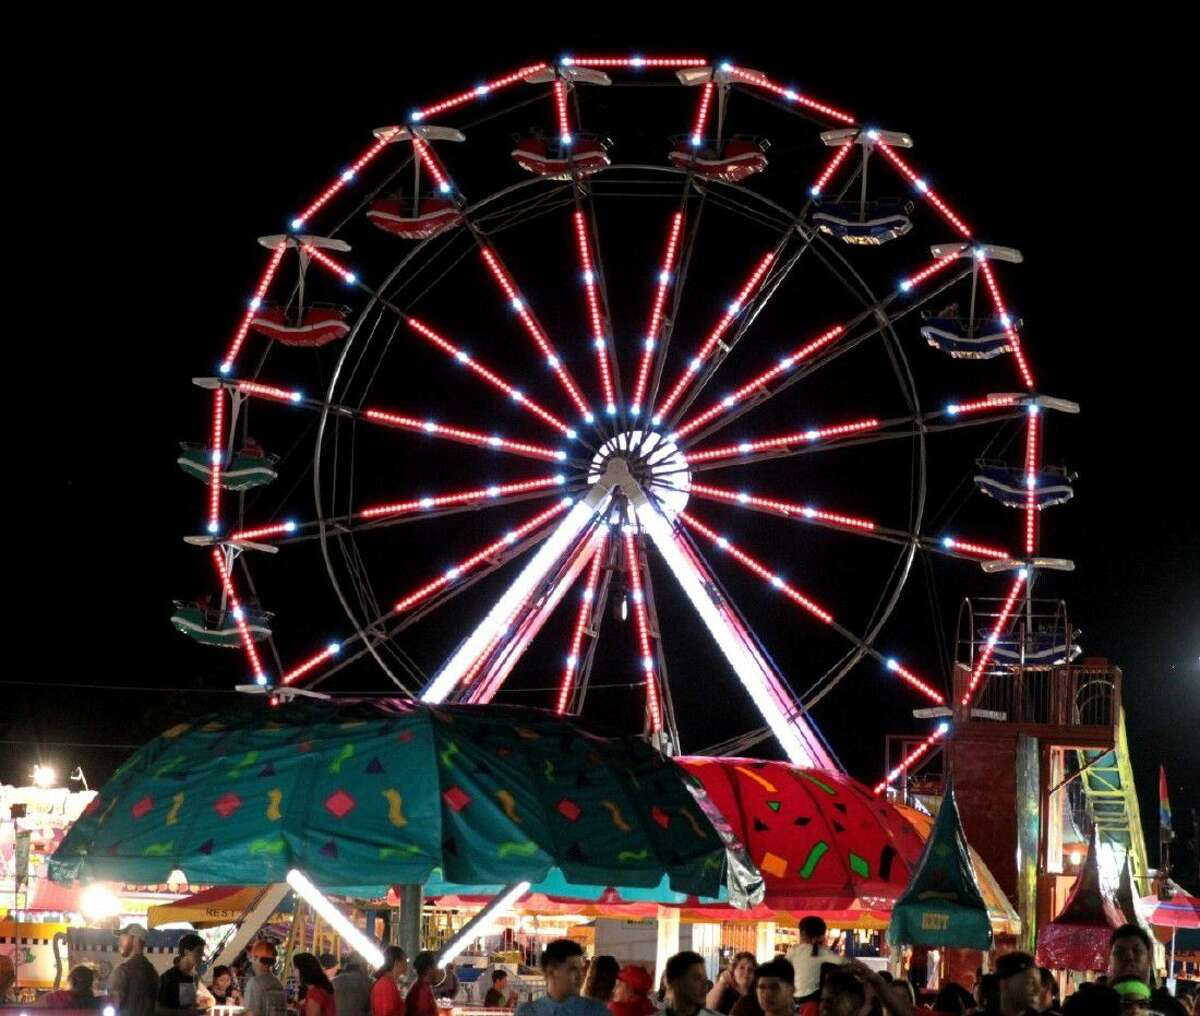 The Fort Bend County Fair offers the Todd Armstrong Shows with carnival rides, games and food. Rides include the Super Shot and Himalaya, along with the Gondola Wheel and Tilt-A-Whirl, plus a kiddy land with the classic carousel and circus train.